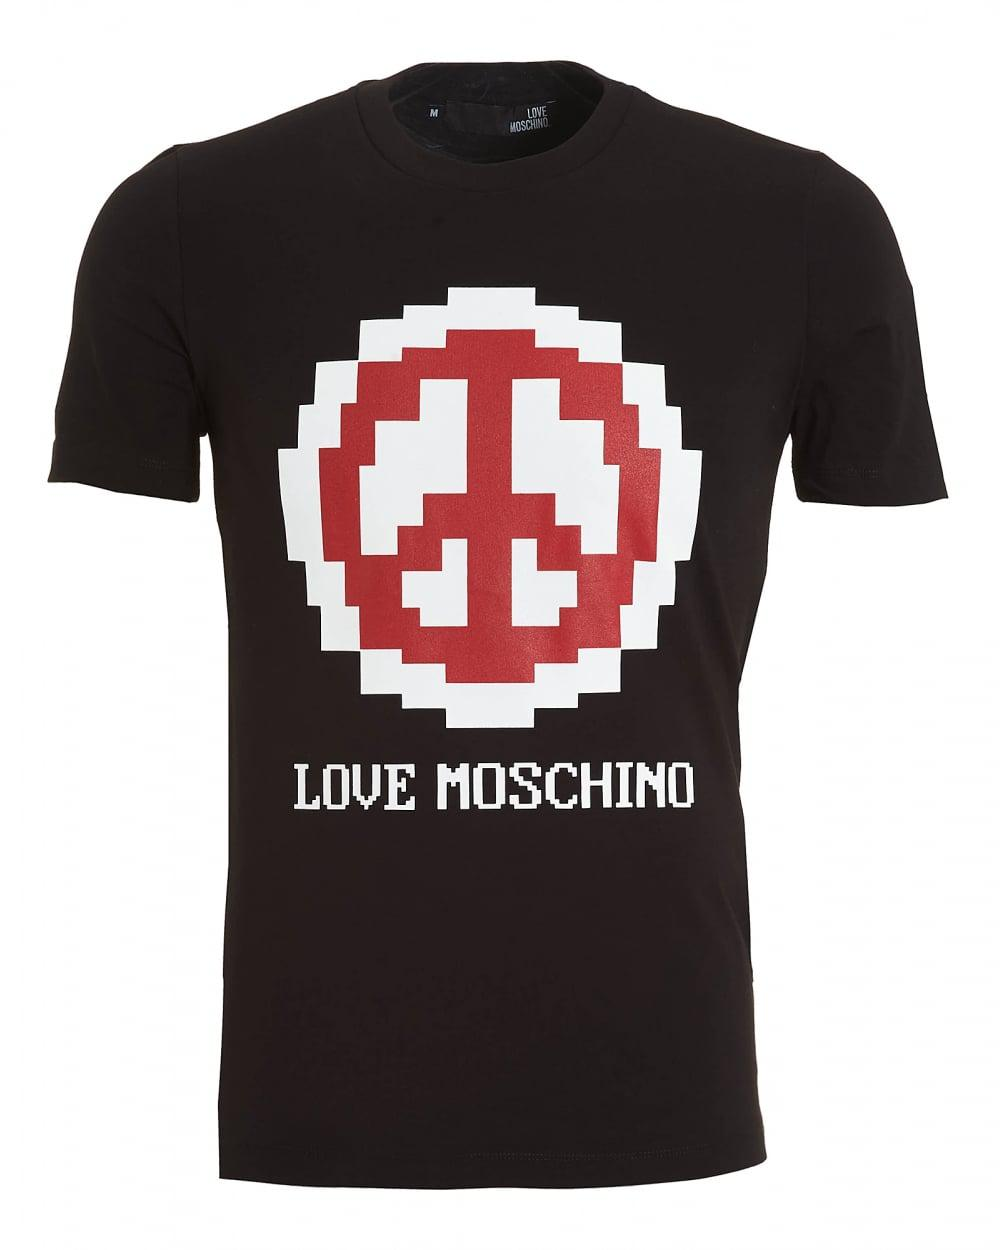 love moschino peace sign emoji t shirt slim fit black tee. Black Bedroom Furniture Sets. Home Design Ideas